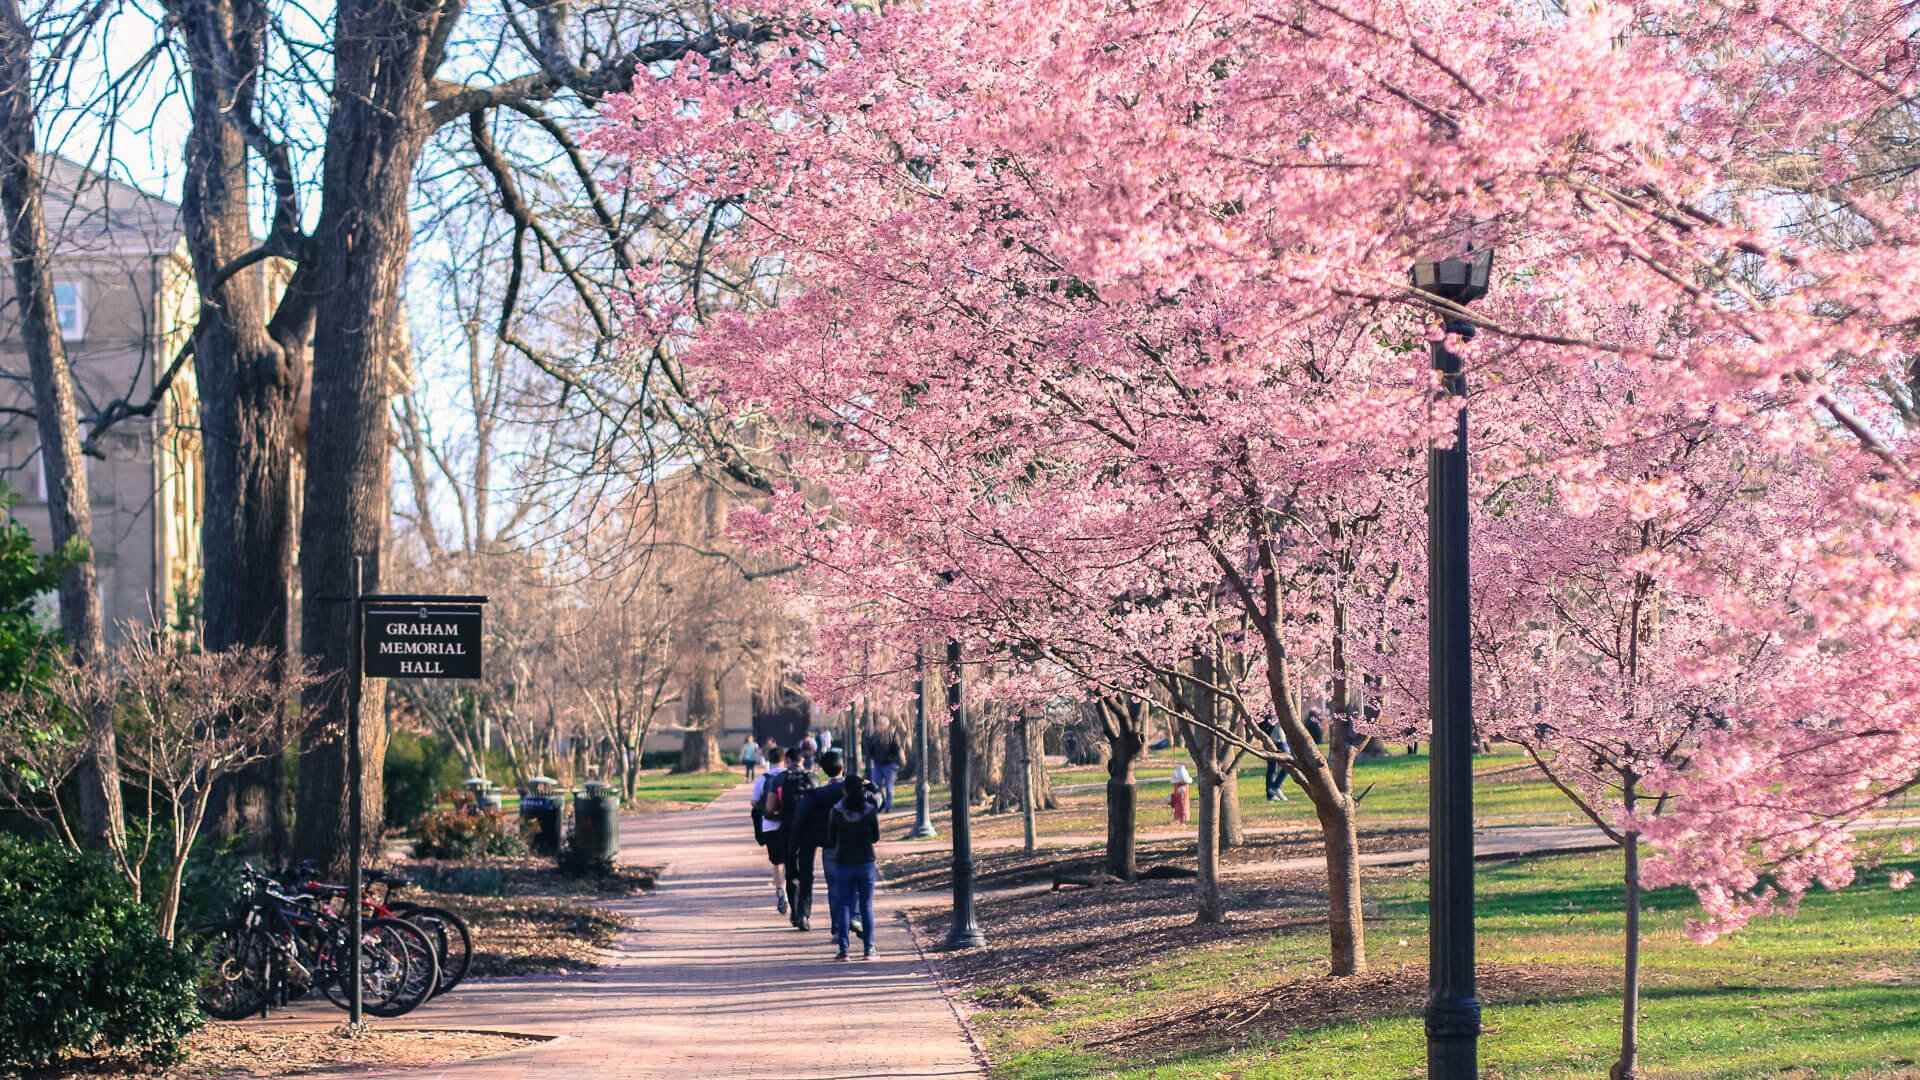 The cherry blossoms at the start of spring on UNC-Chapel Hill's campus.